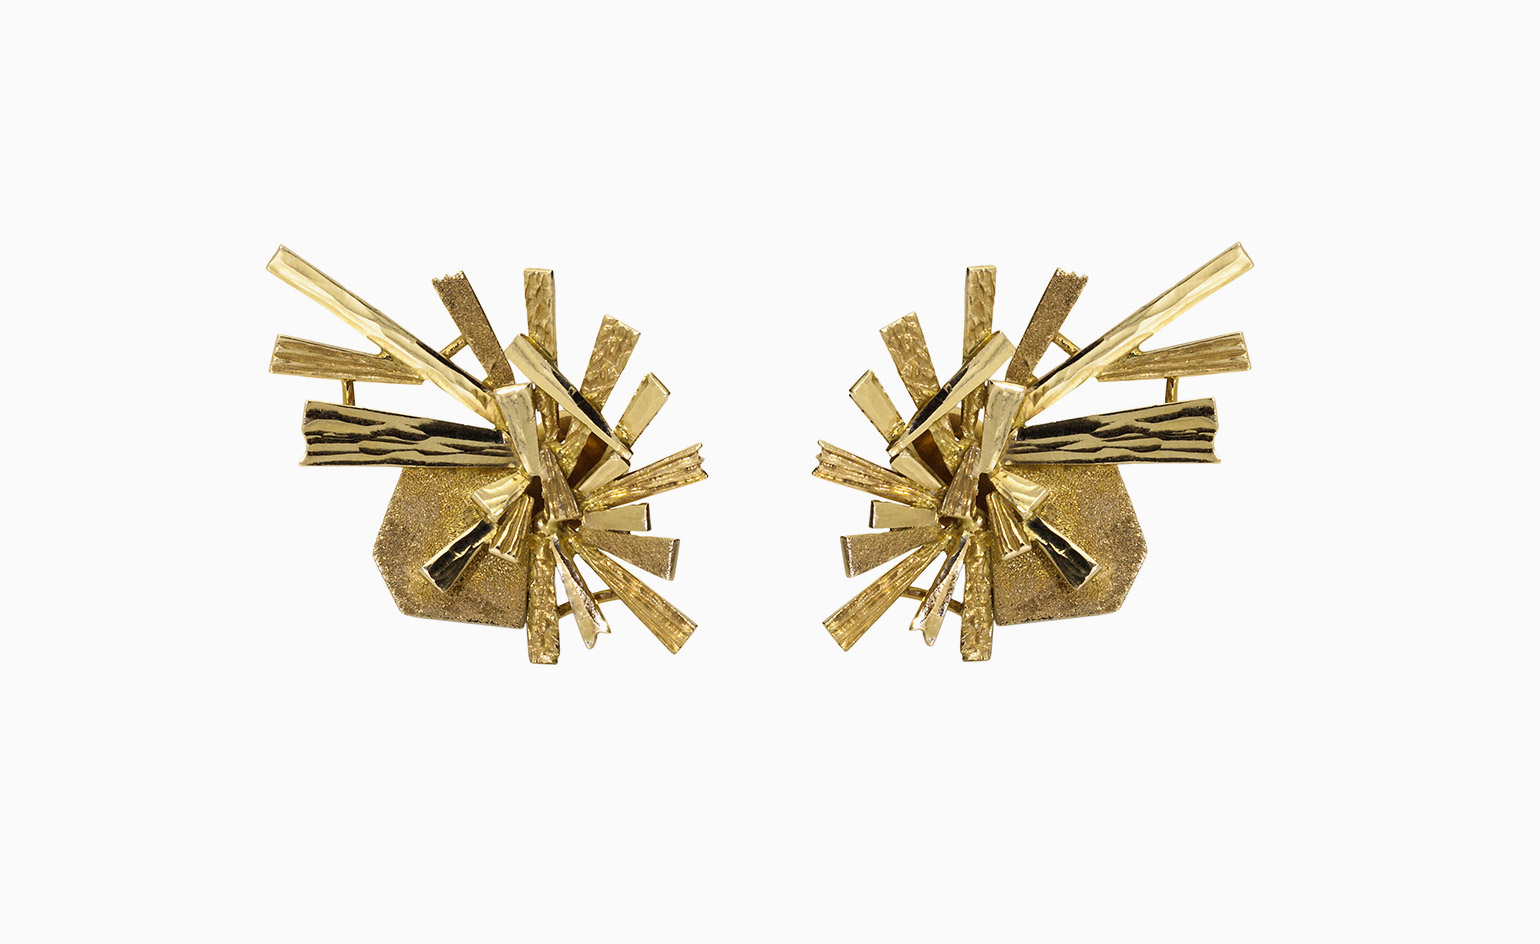 Spark cluster earrings in 18-ct yellow gold, by Dalia Daou